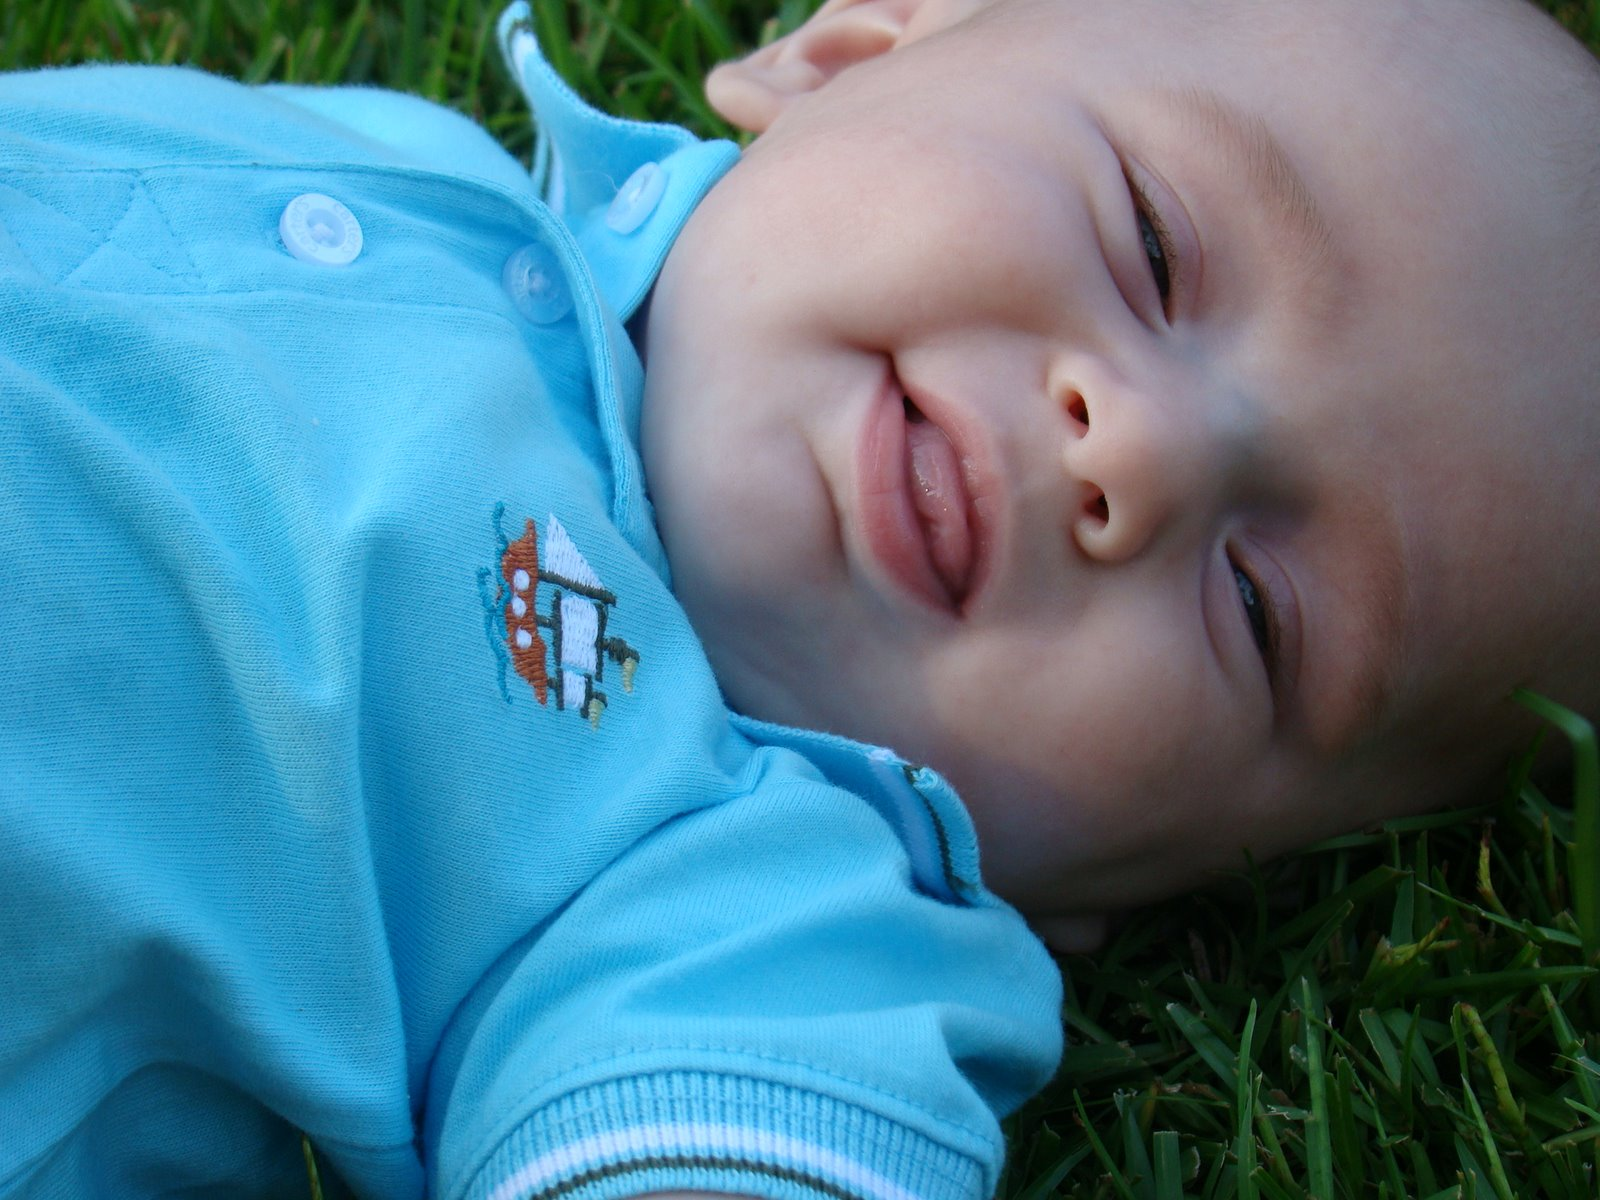 Baby's Temperament - The Journey of Parenthood